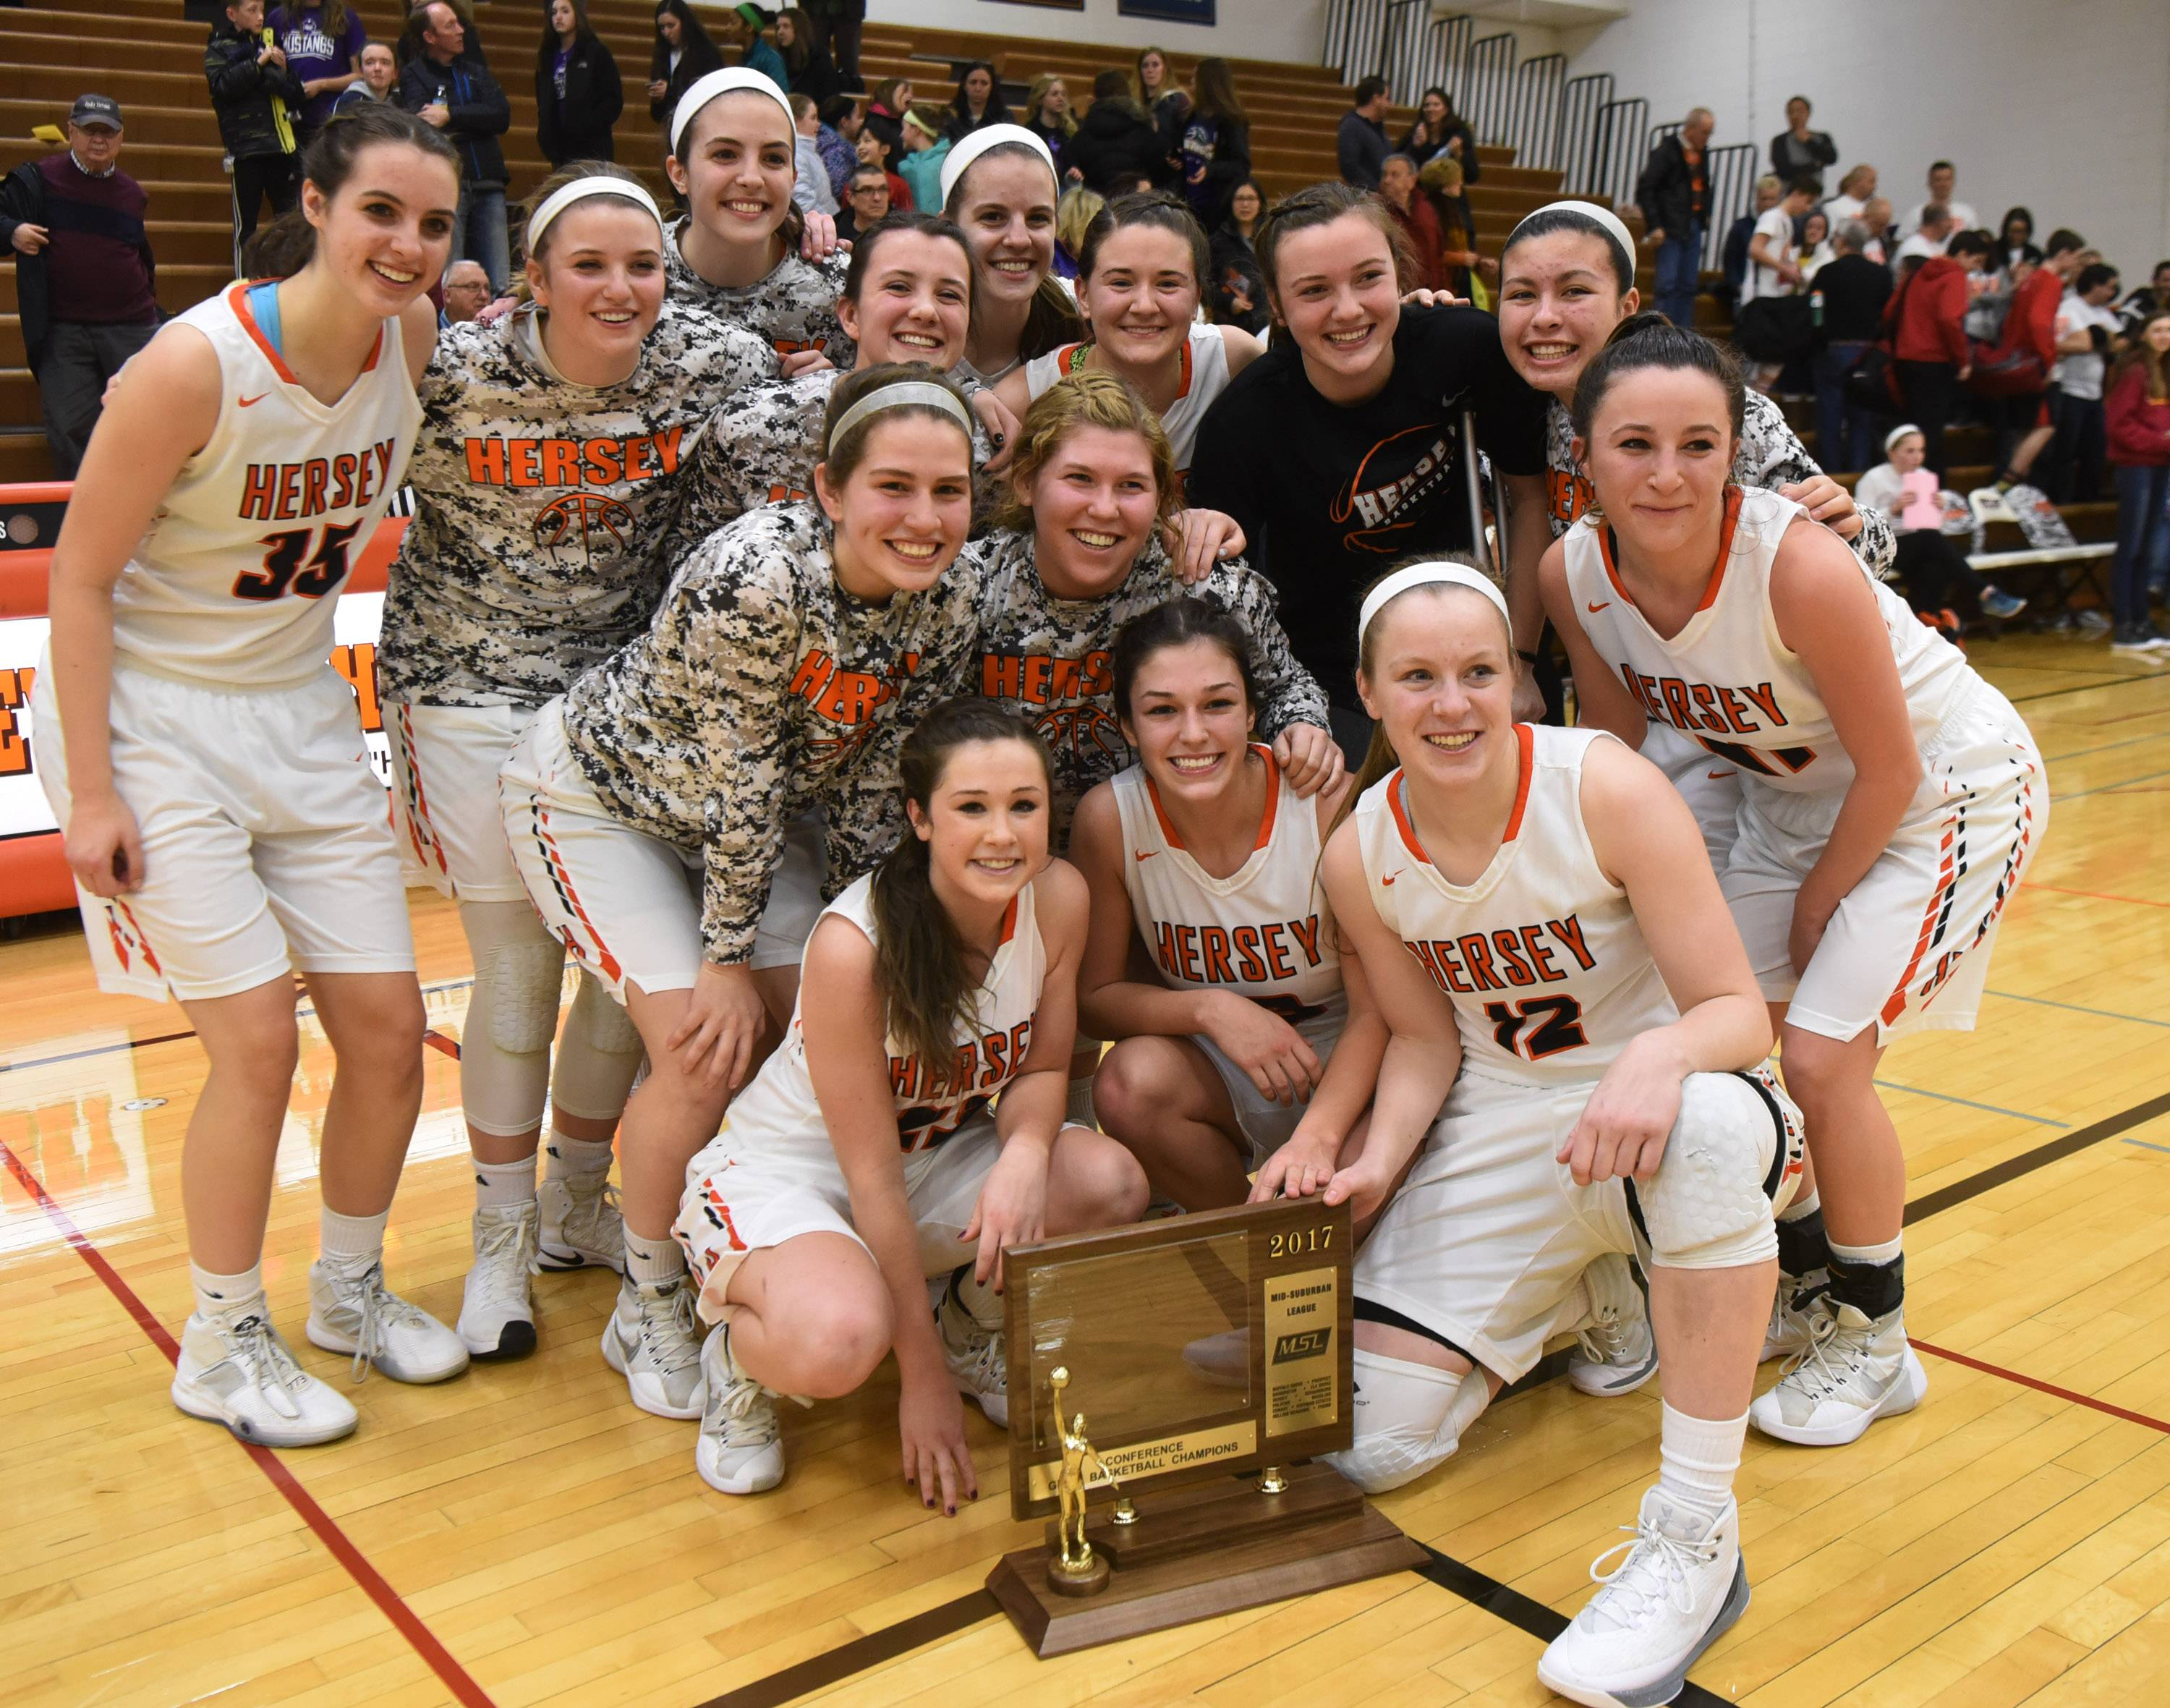 Hersey players pose with their trophy after defeating Fremd 36-33 during the Mid-Suburban League championship game in Arlington Heights on Wednesday.